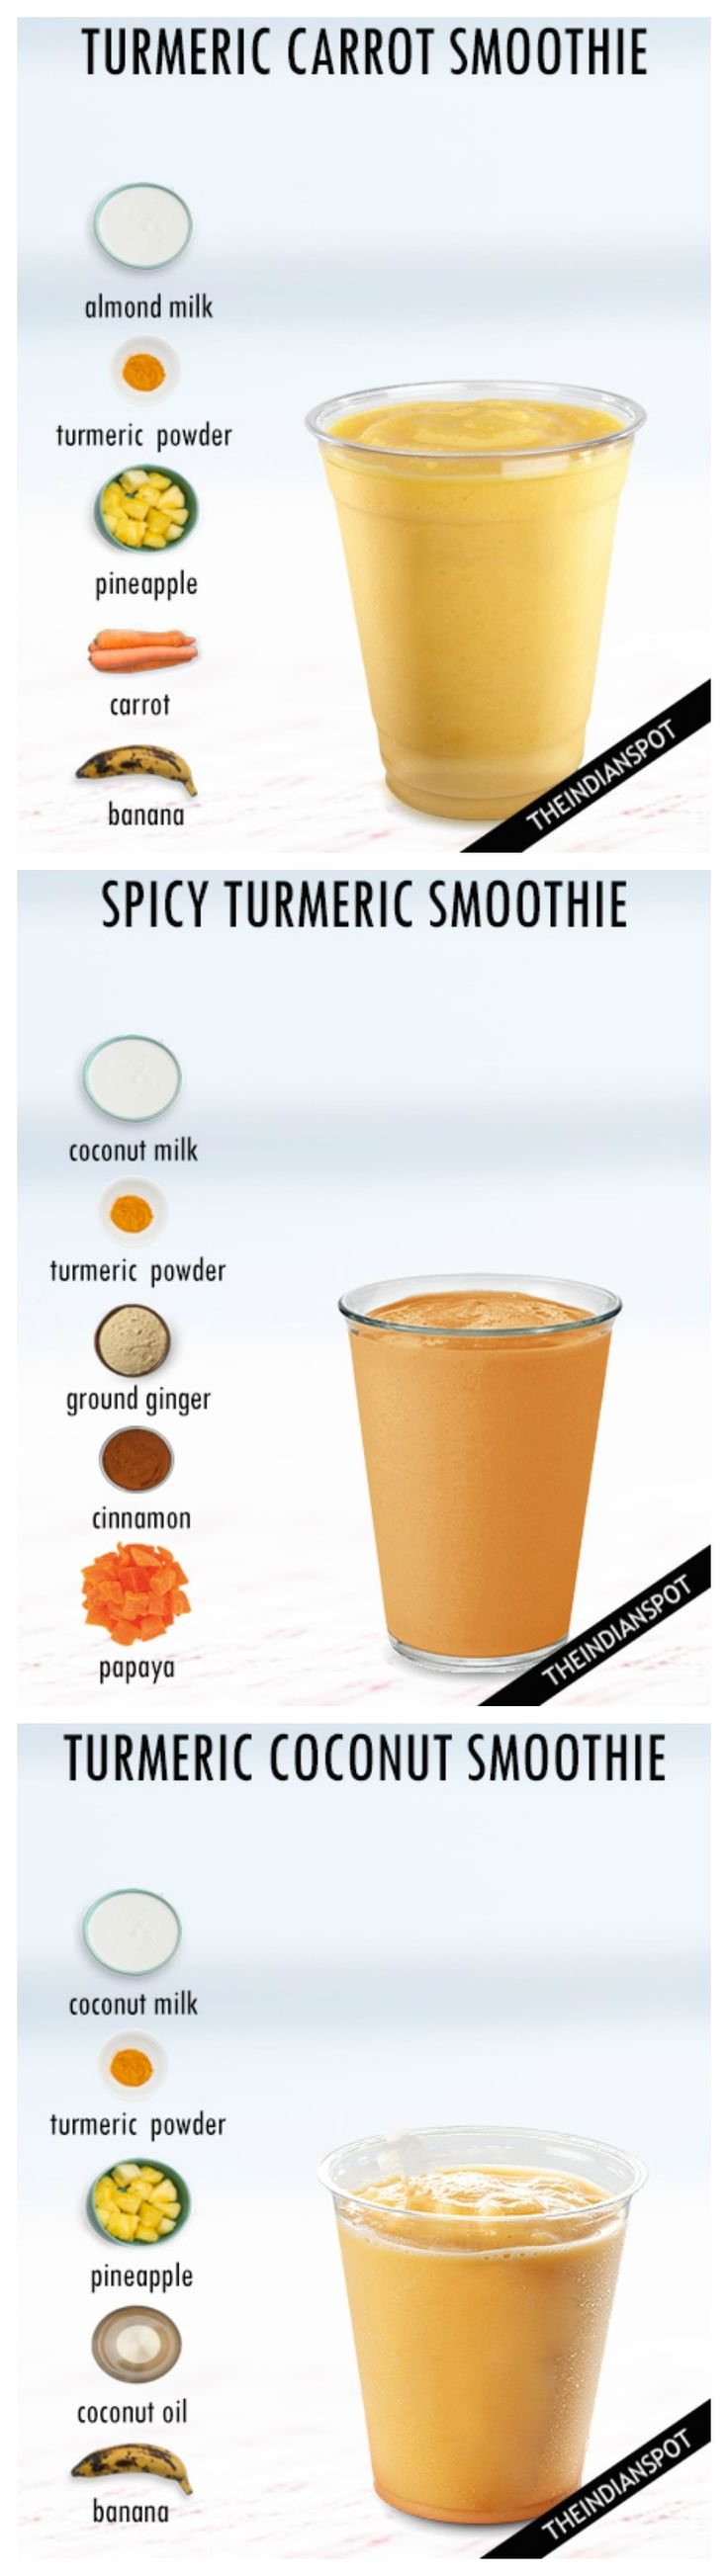 HEALING TURMERIC SMOOTHIE RECIPES                                                                                                                                                                                 More